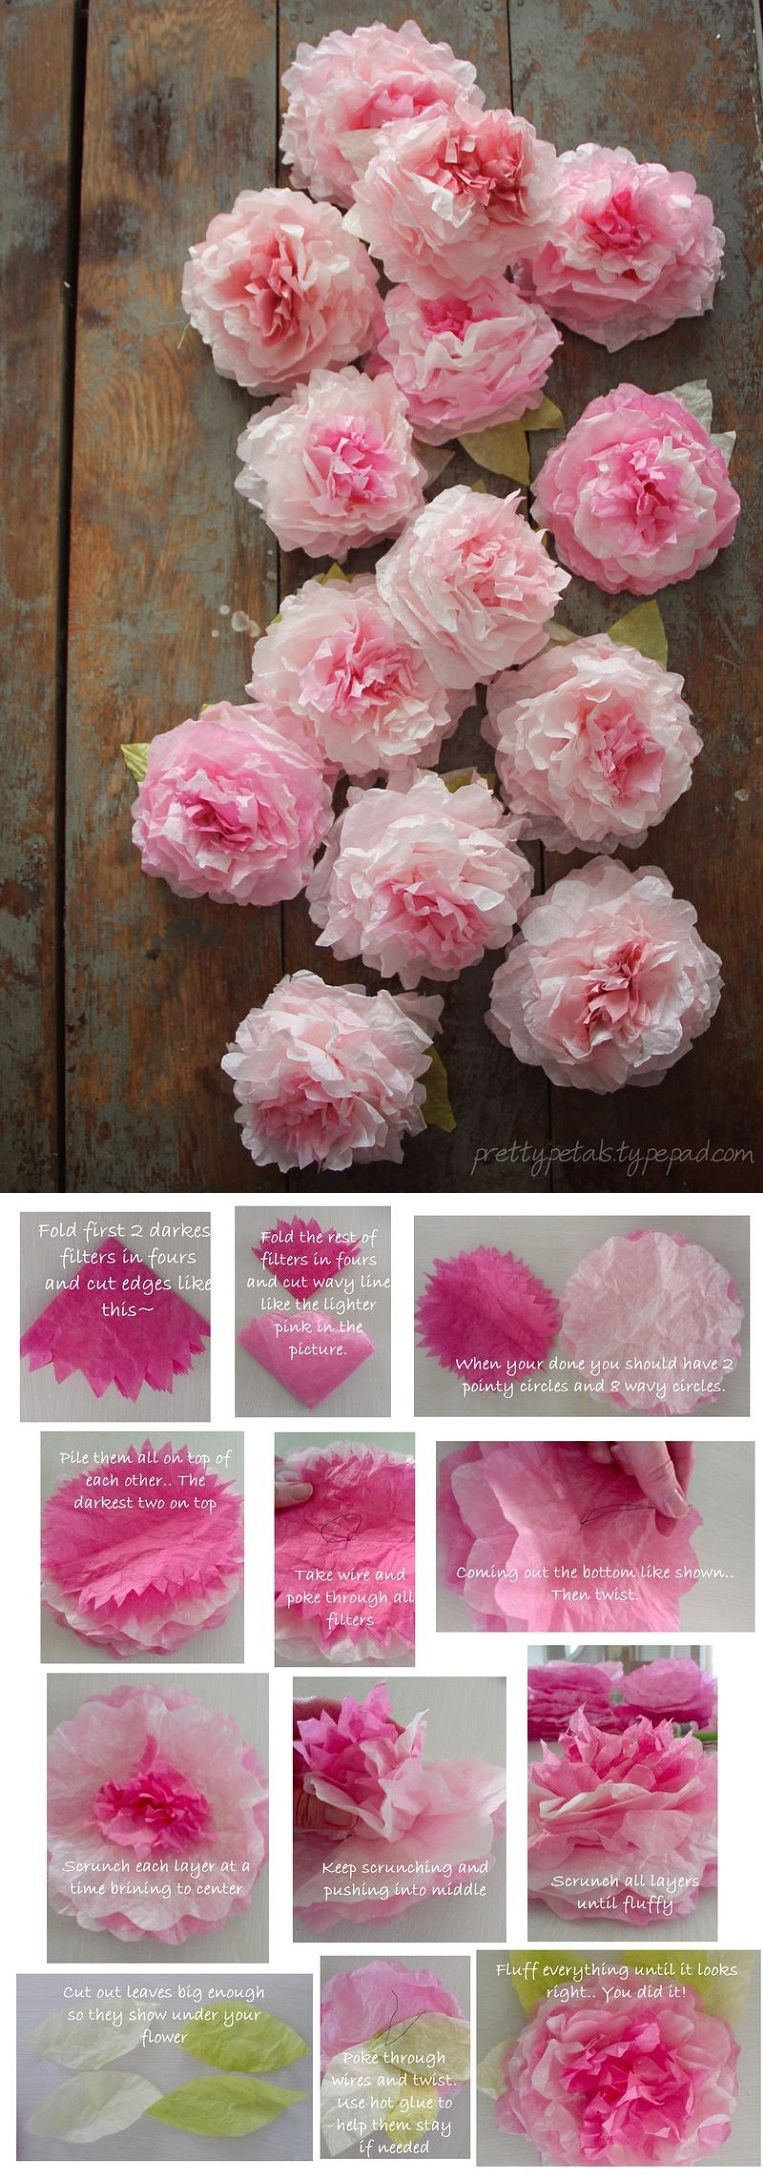 peony coffee filter flowers tutorial 16 flower power diy home decor projects gleamitup. Black Bedroom Furniture Sets. Home Design Ideas